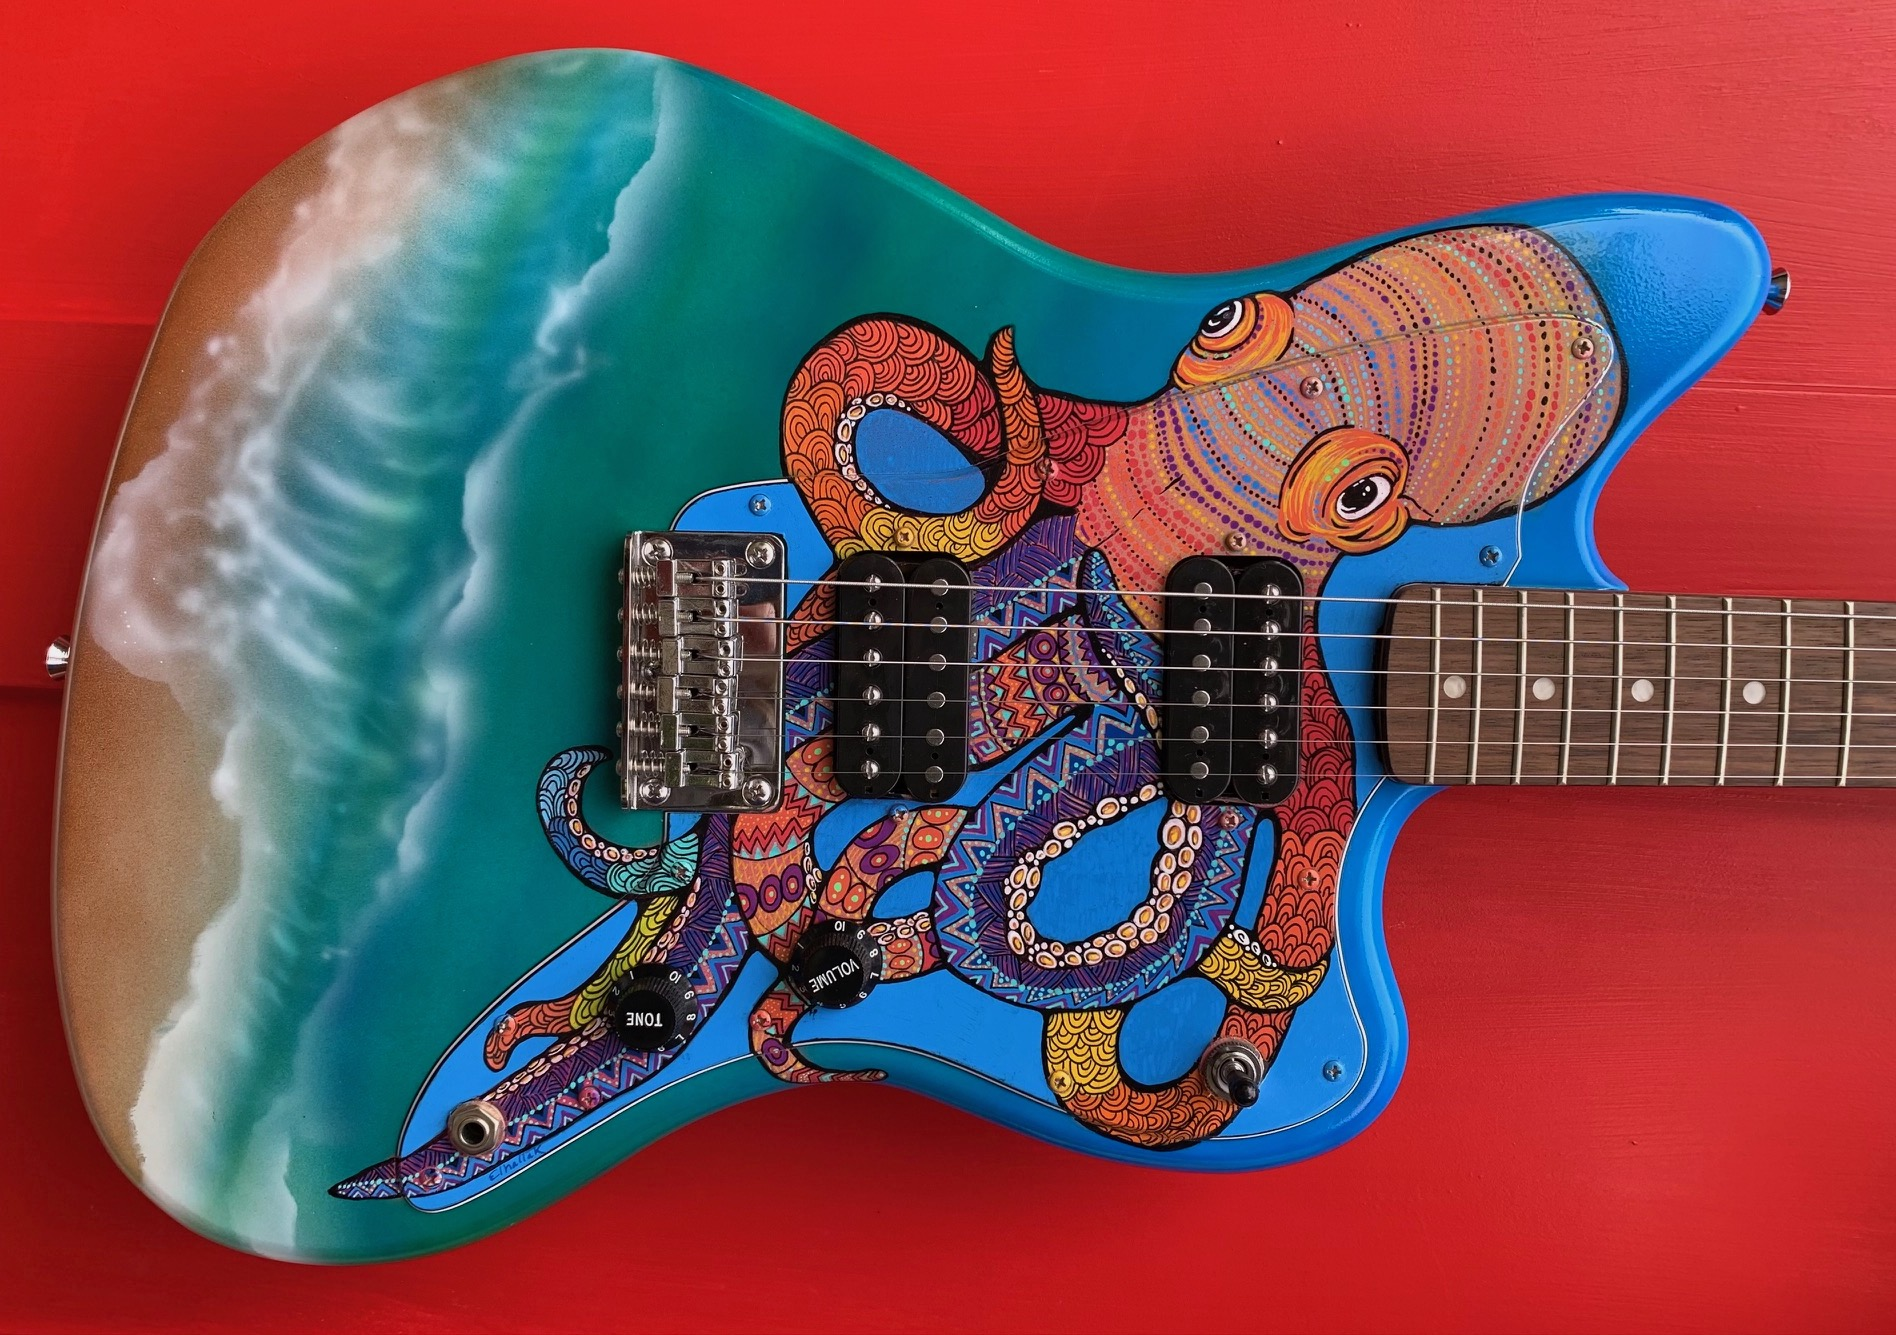 Custom Guitar Jazzmaster offset, Hand Painted Ocean with Octopus and Sea Turtle